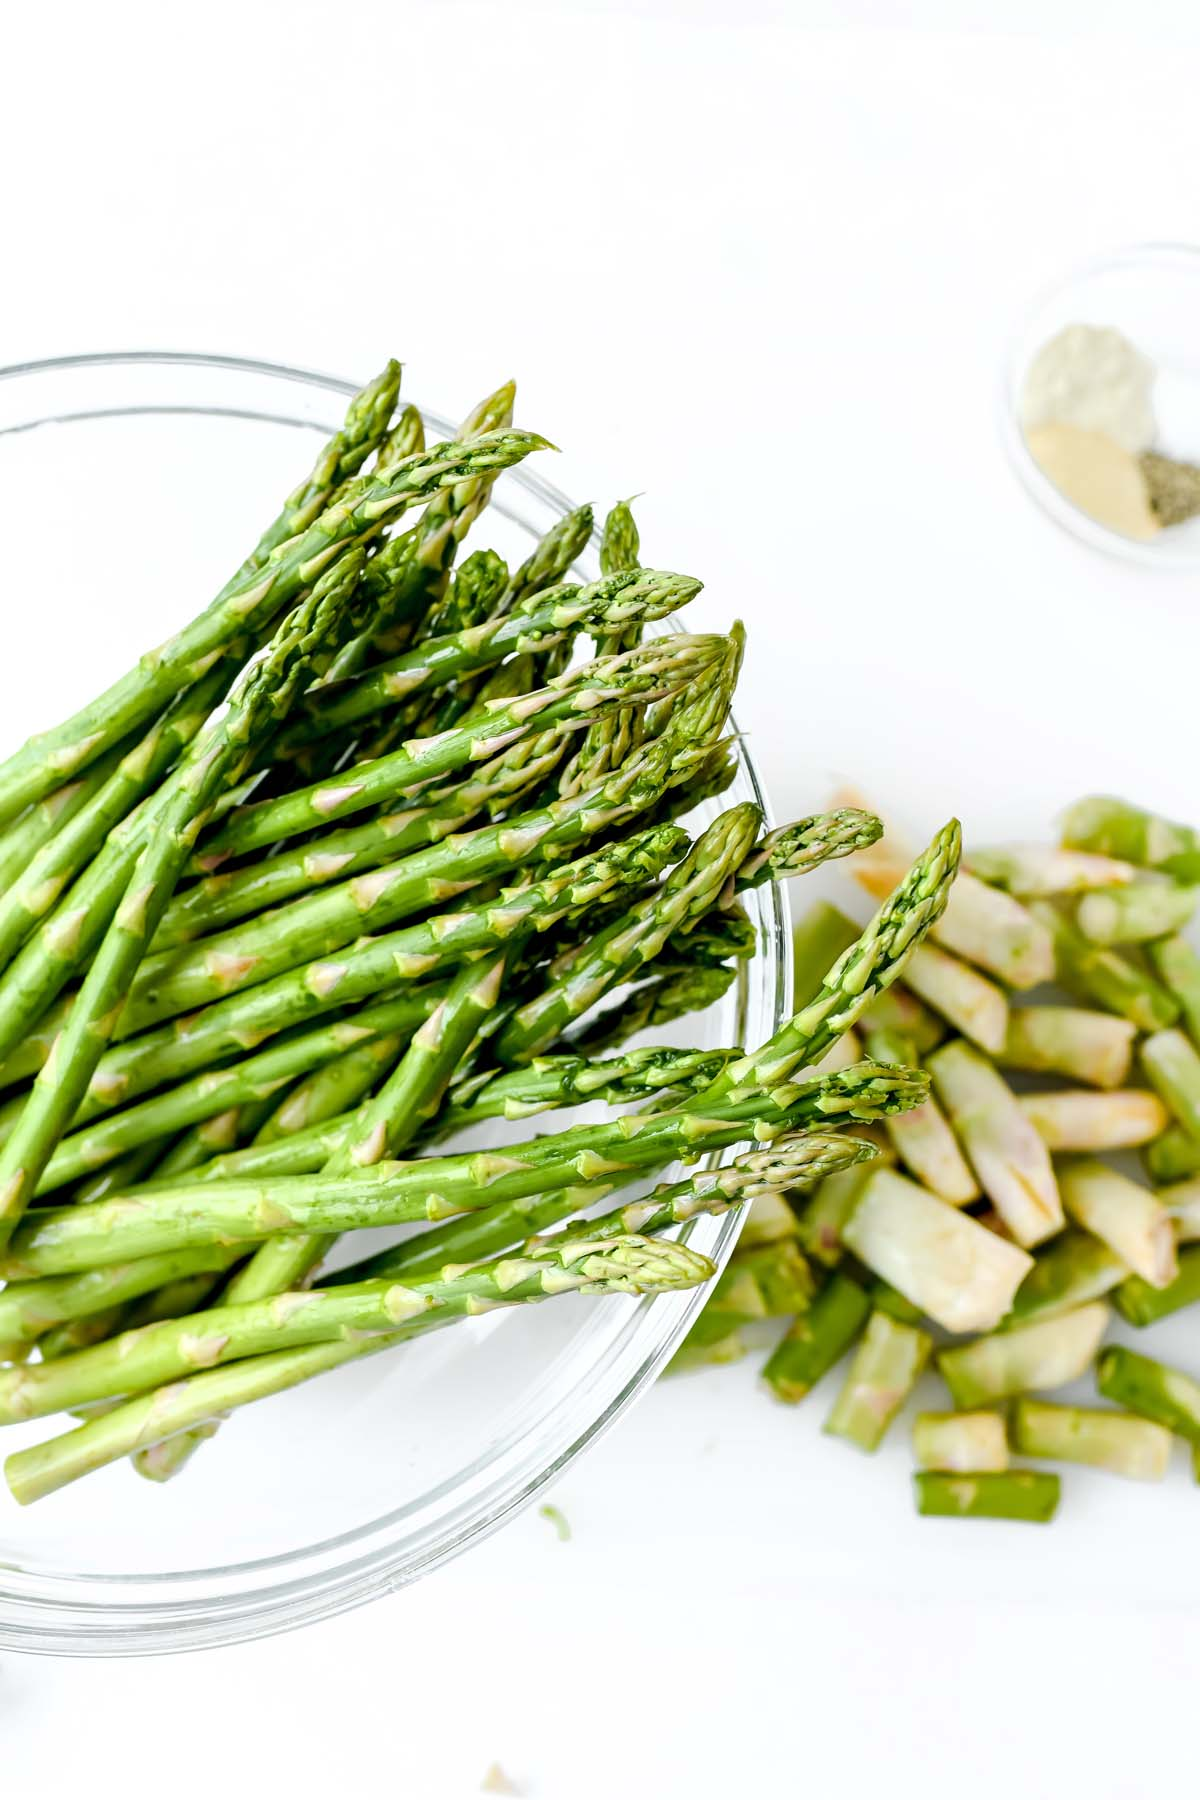 Asparagus with its tips cut off in a bowl.